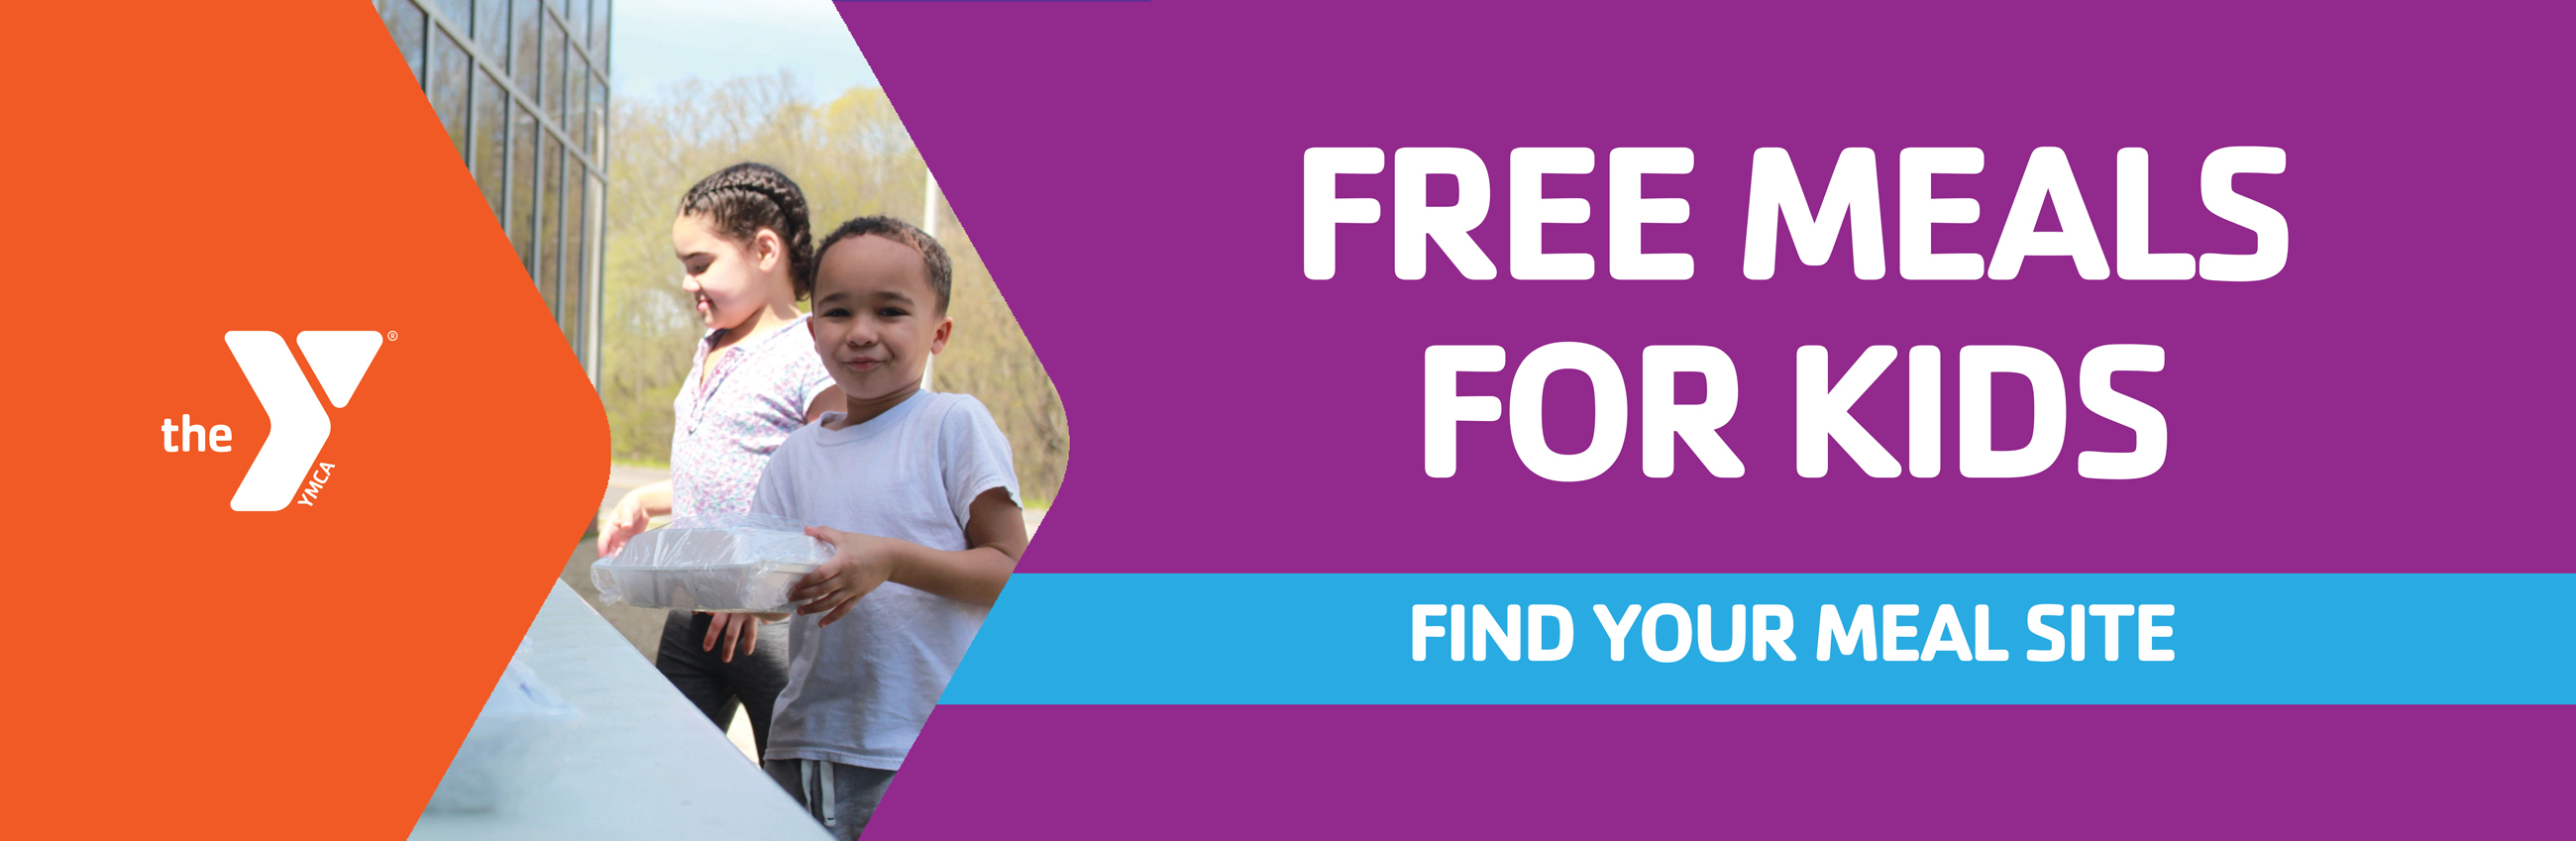 Food Program - Free Meals for Kids